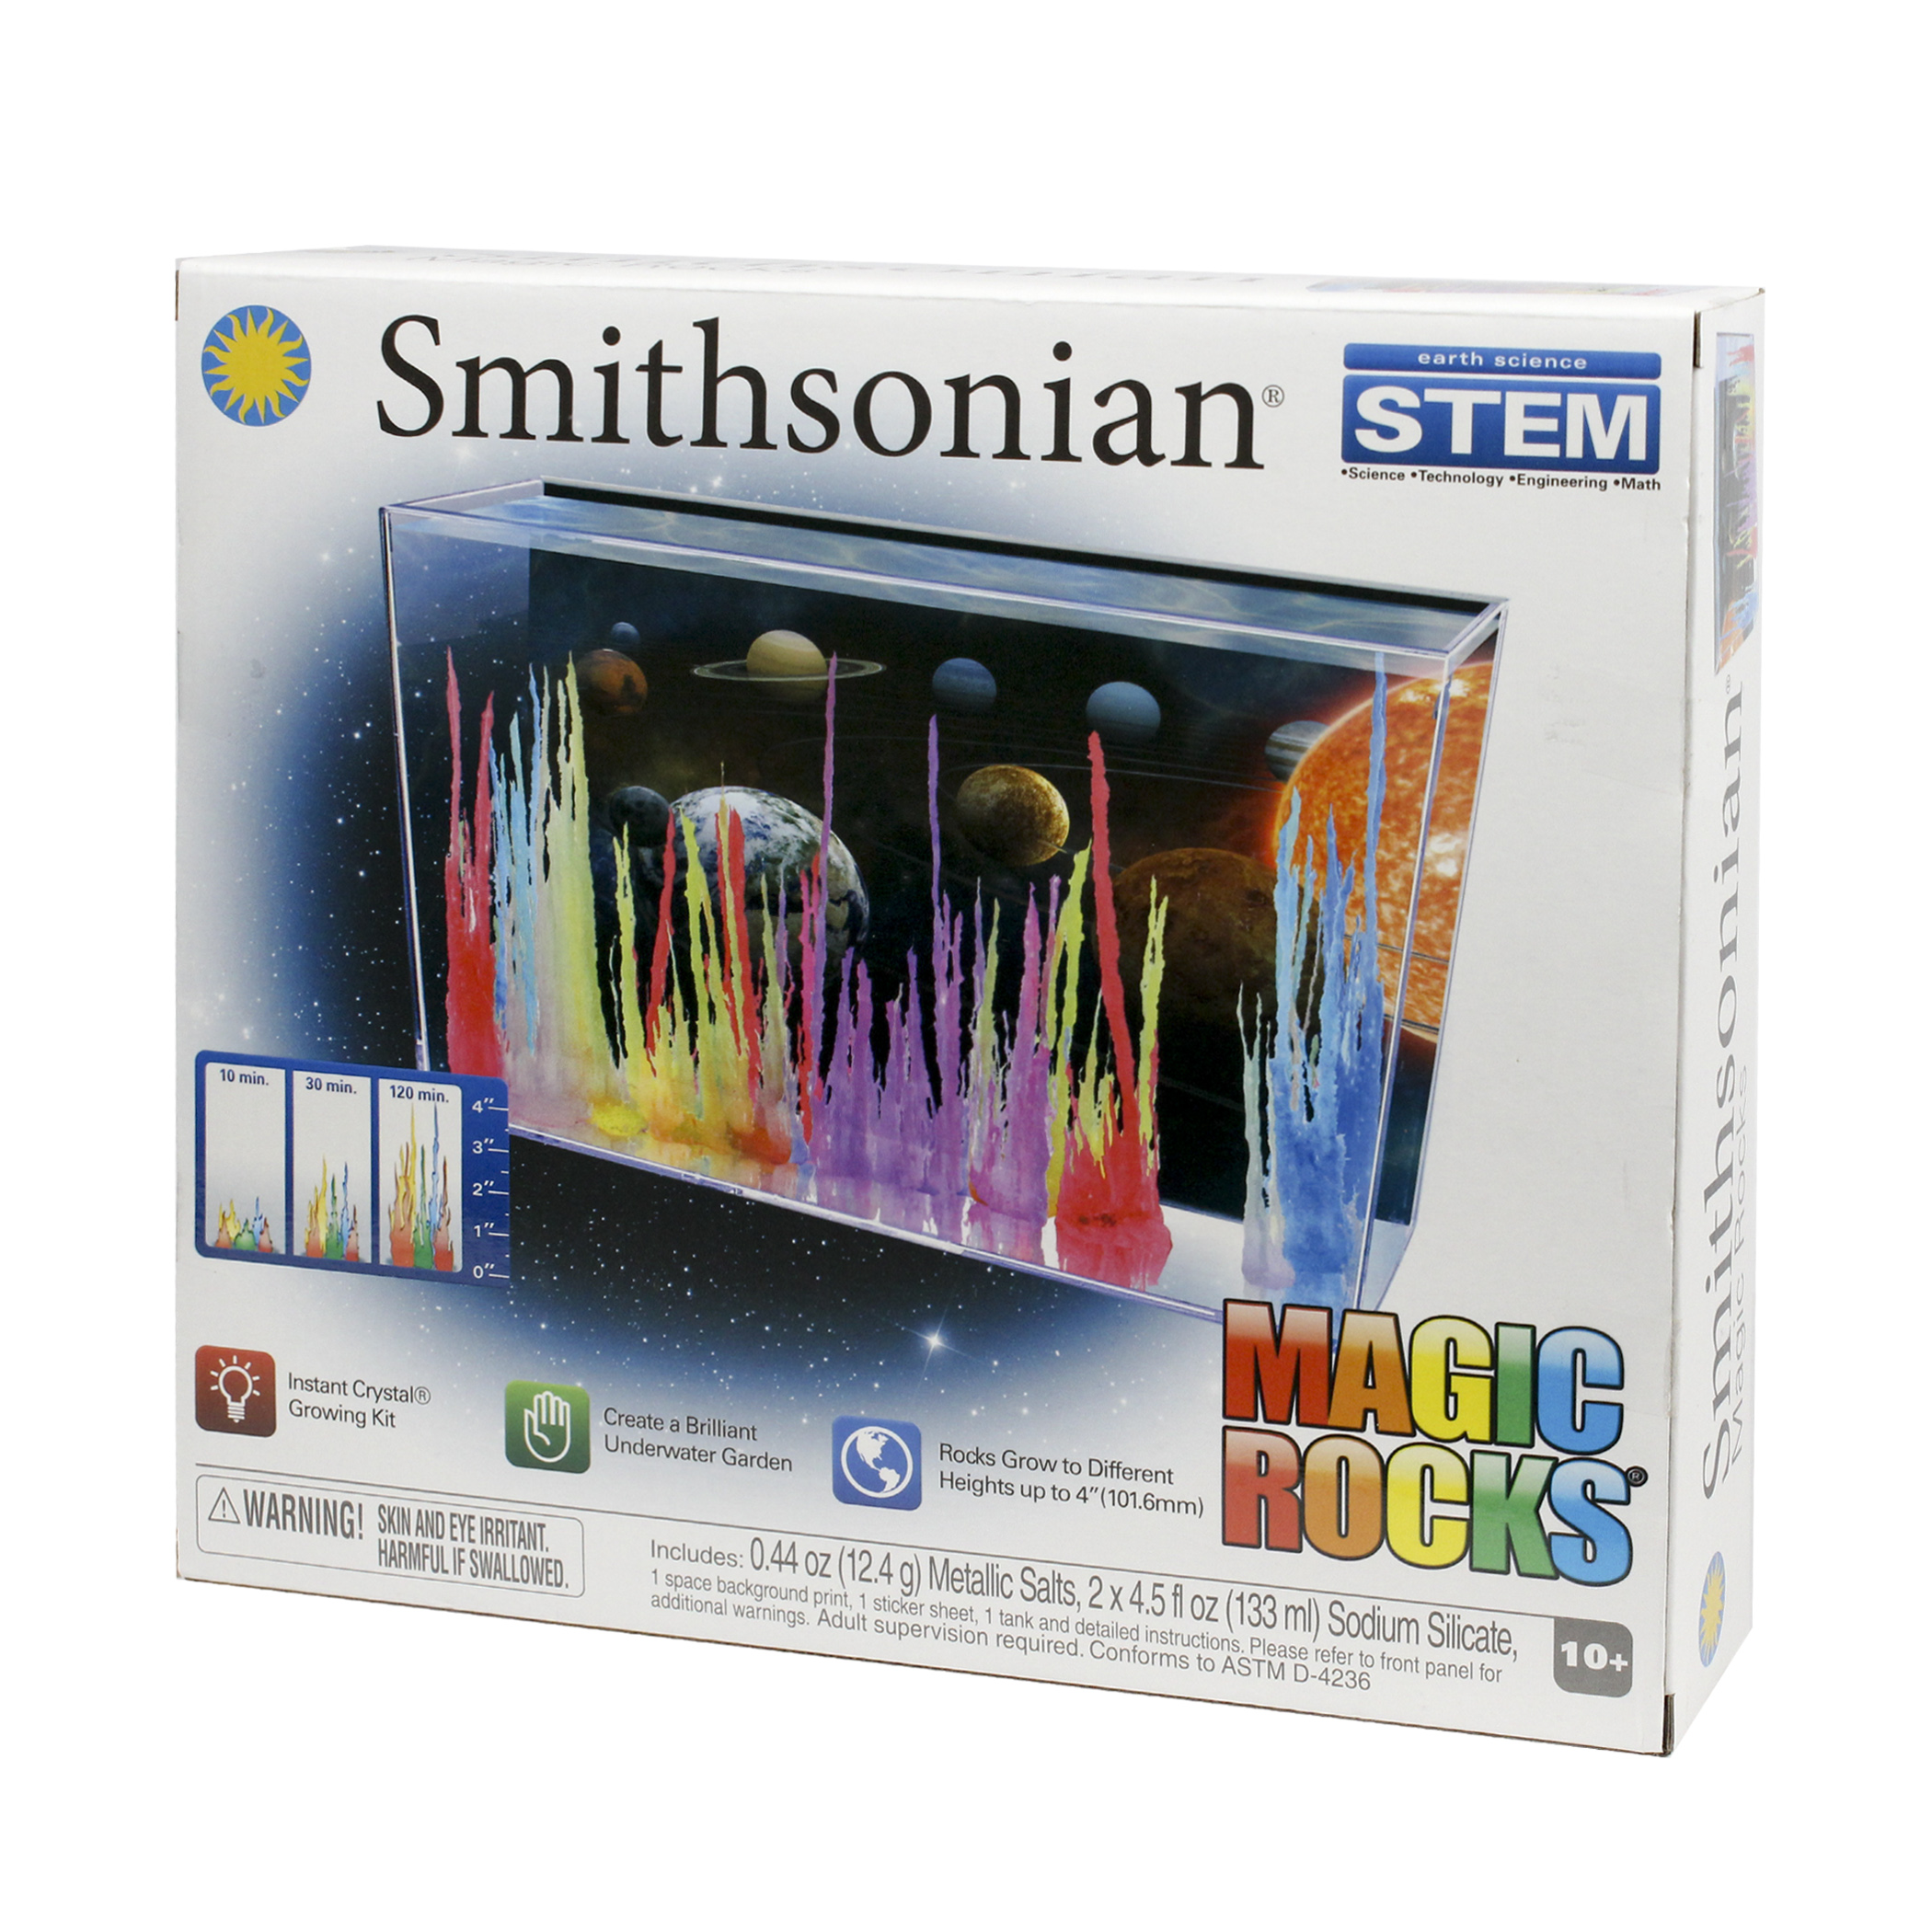 Smithsonian Magic Rocks Kit - Space